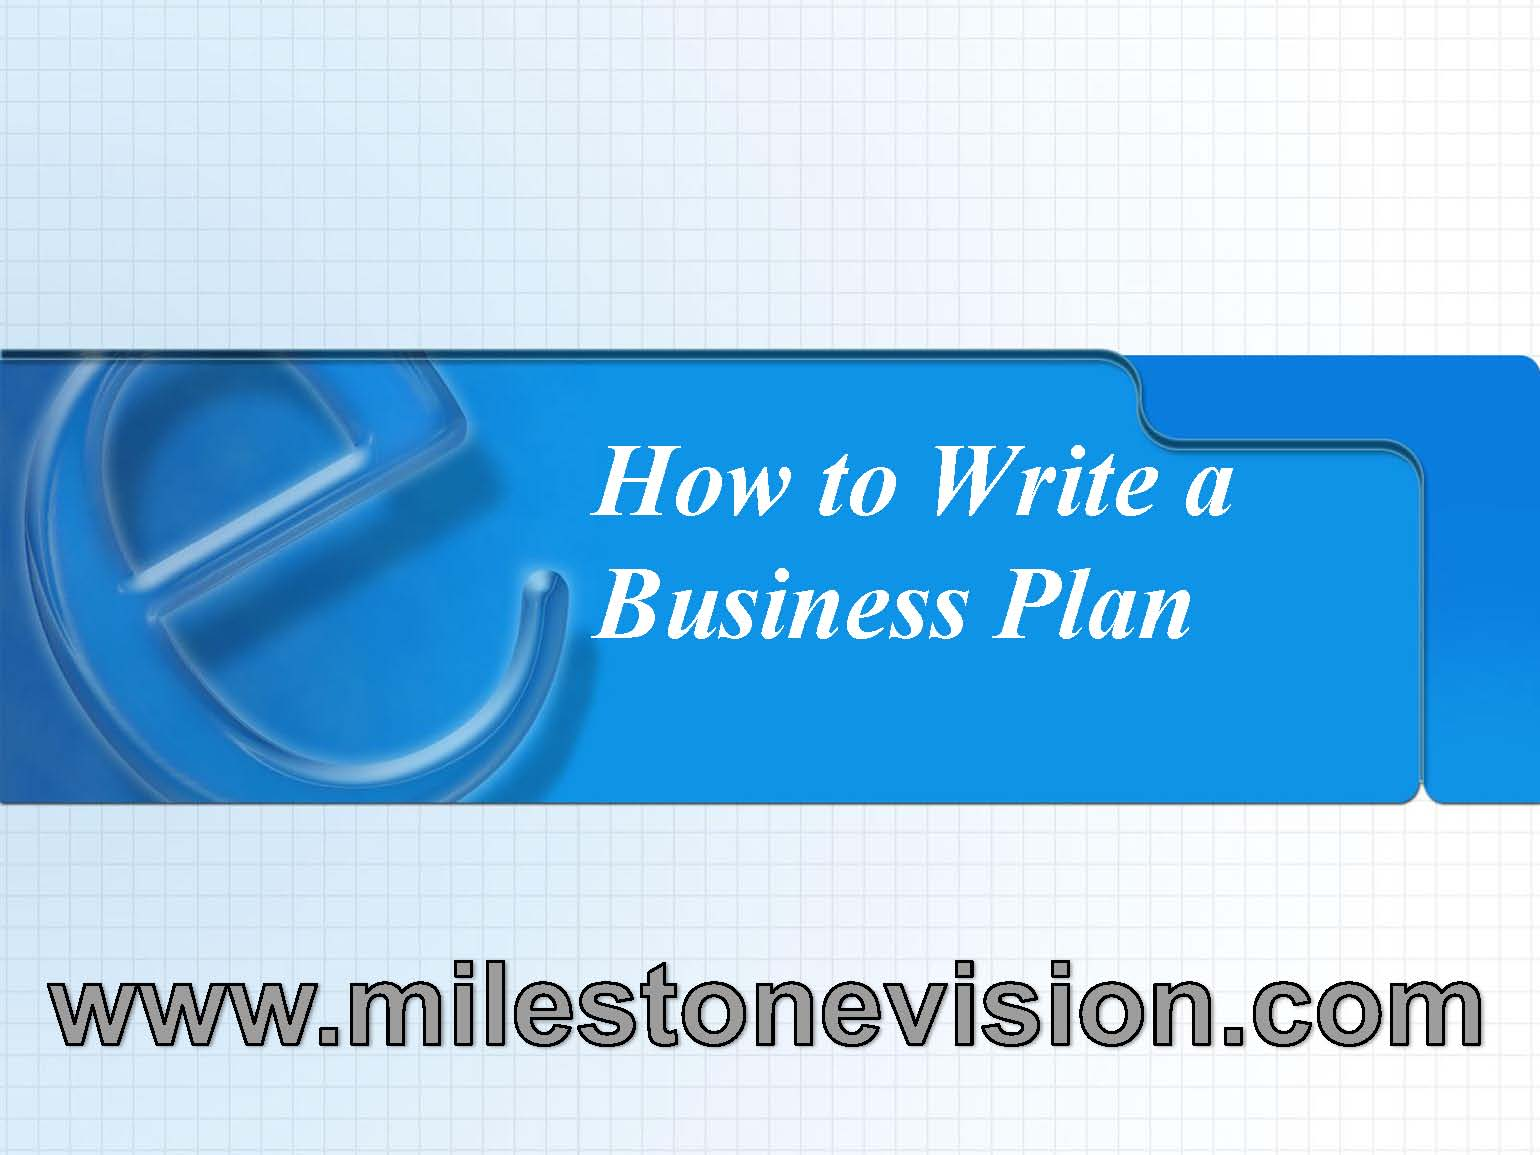 Business plan writing services michigan